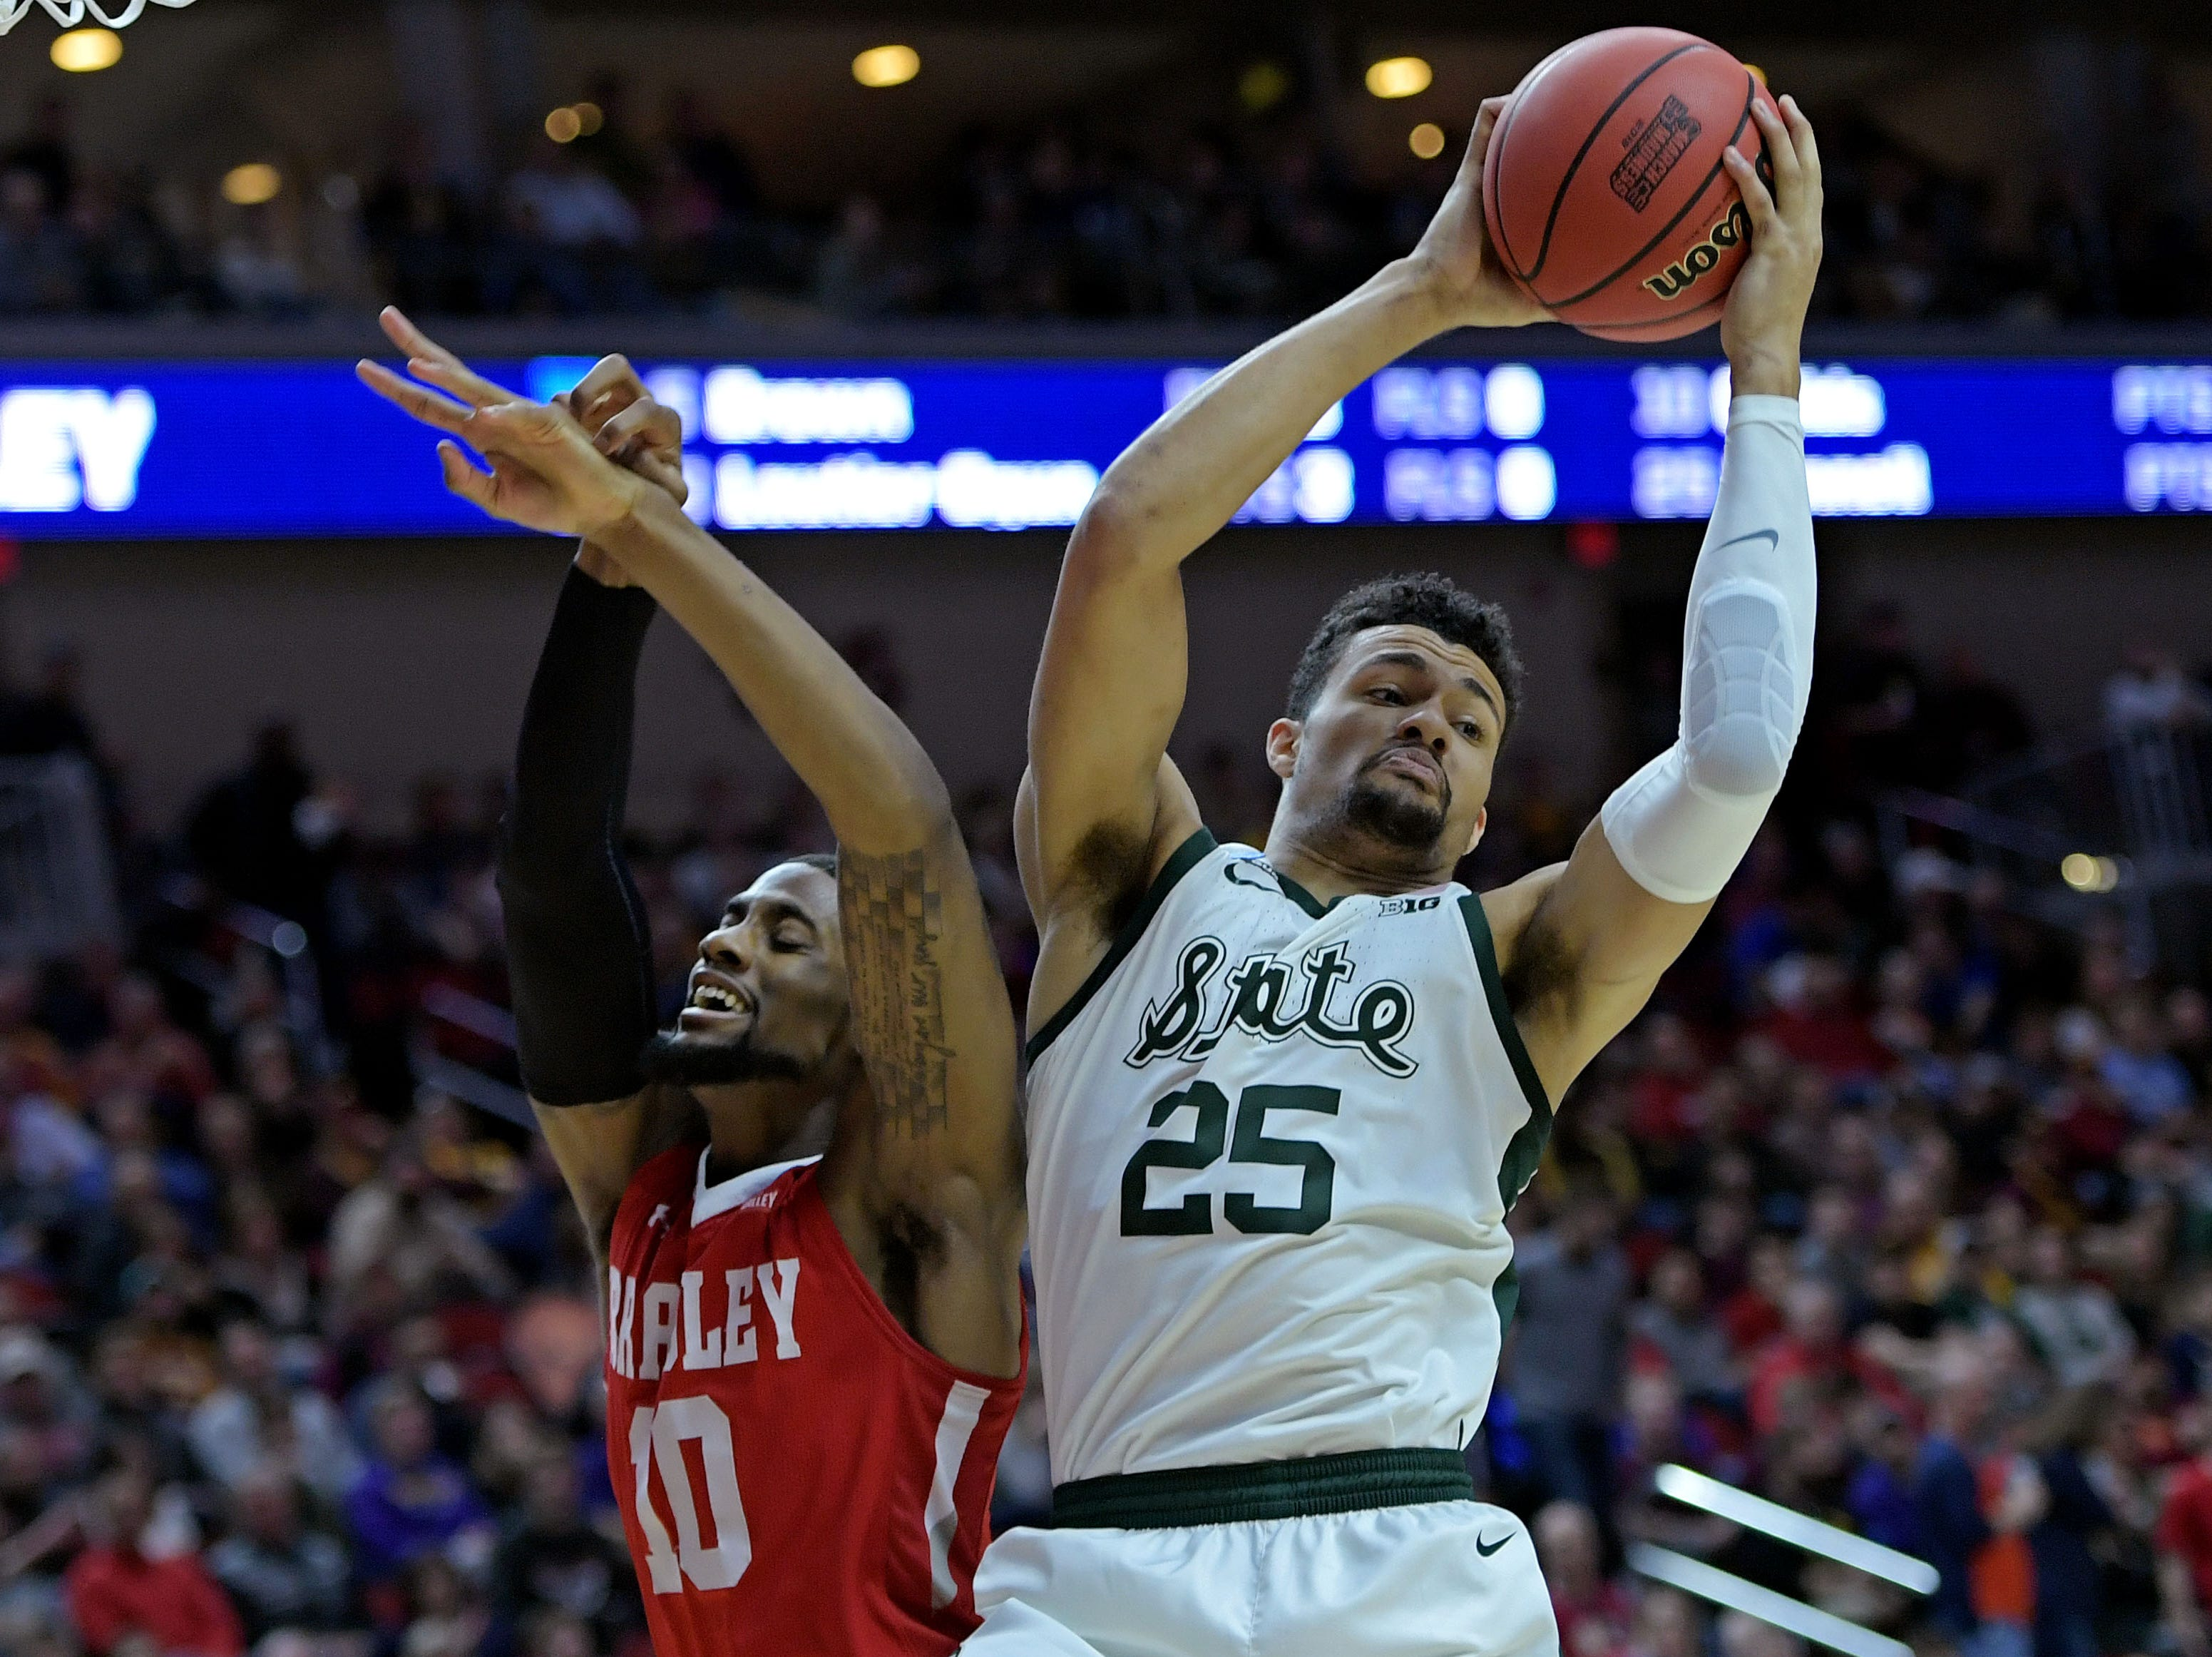 Michigan State Spartans forward Kenny Goins (25) and Bradley Braves forward Elijah Childs (10) go for a rebound during the first half in the first round of the 2019 NCAA Tournament at Wells Fargo Arena.